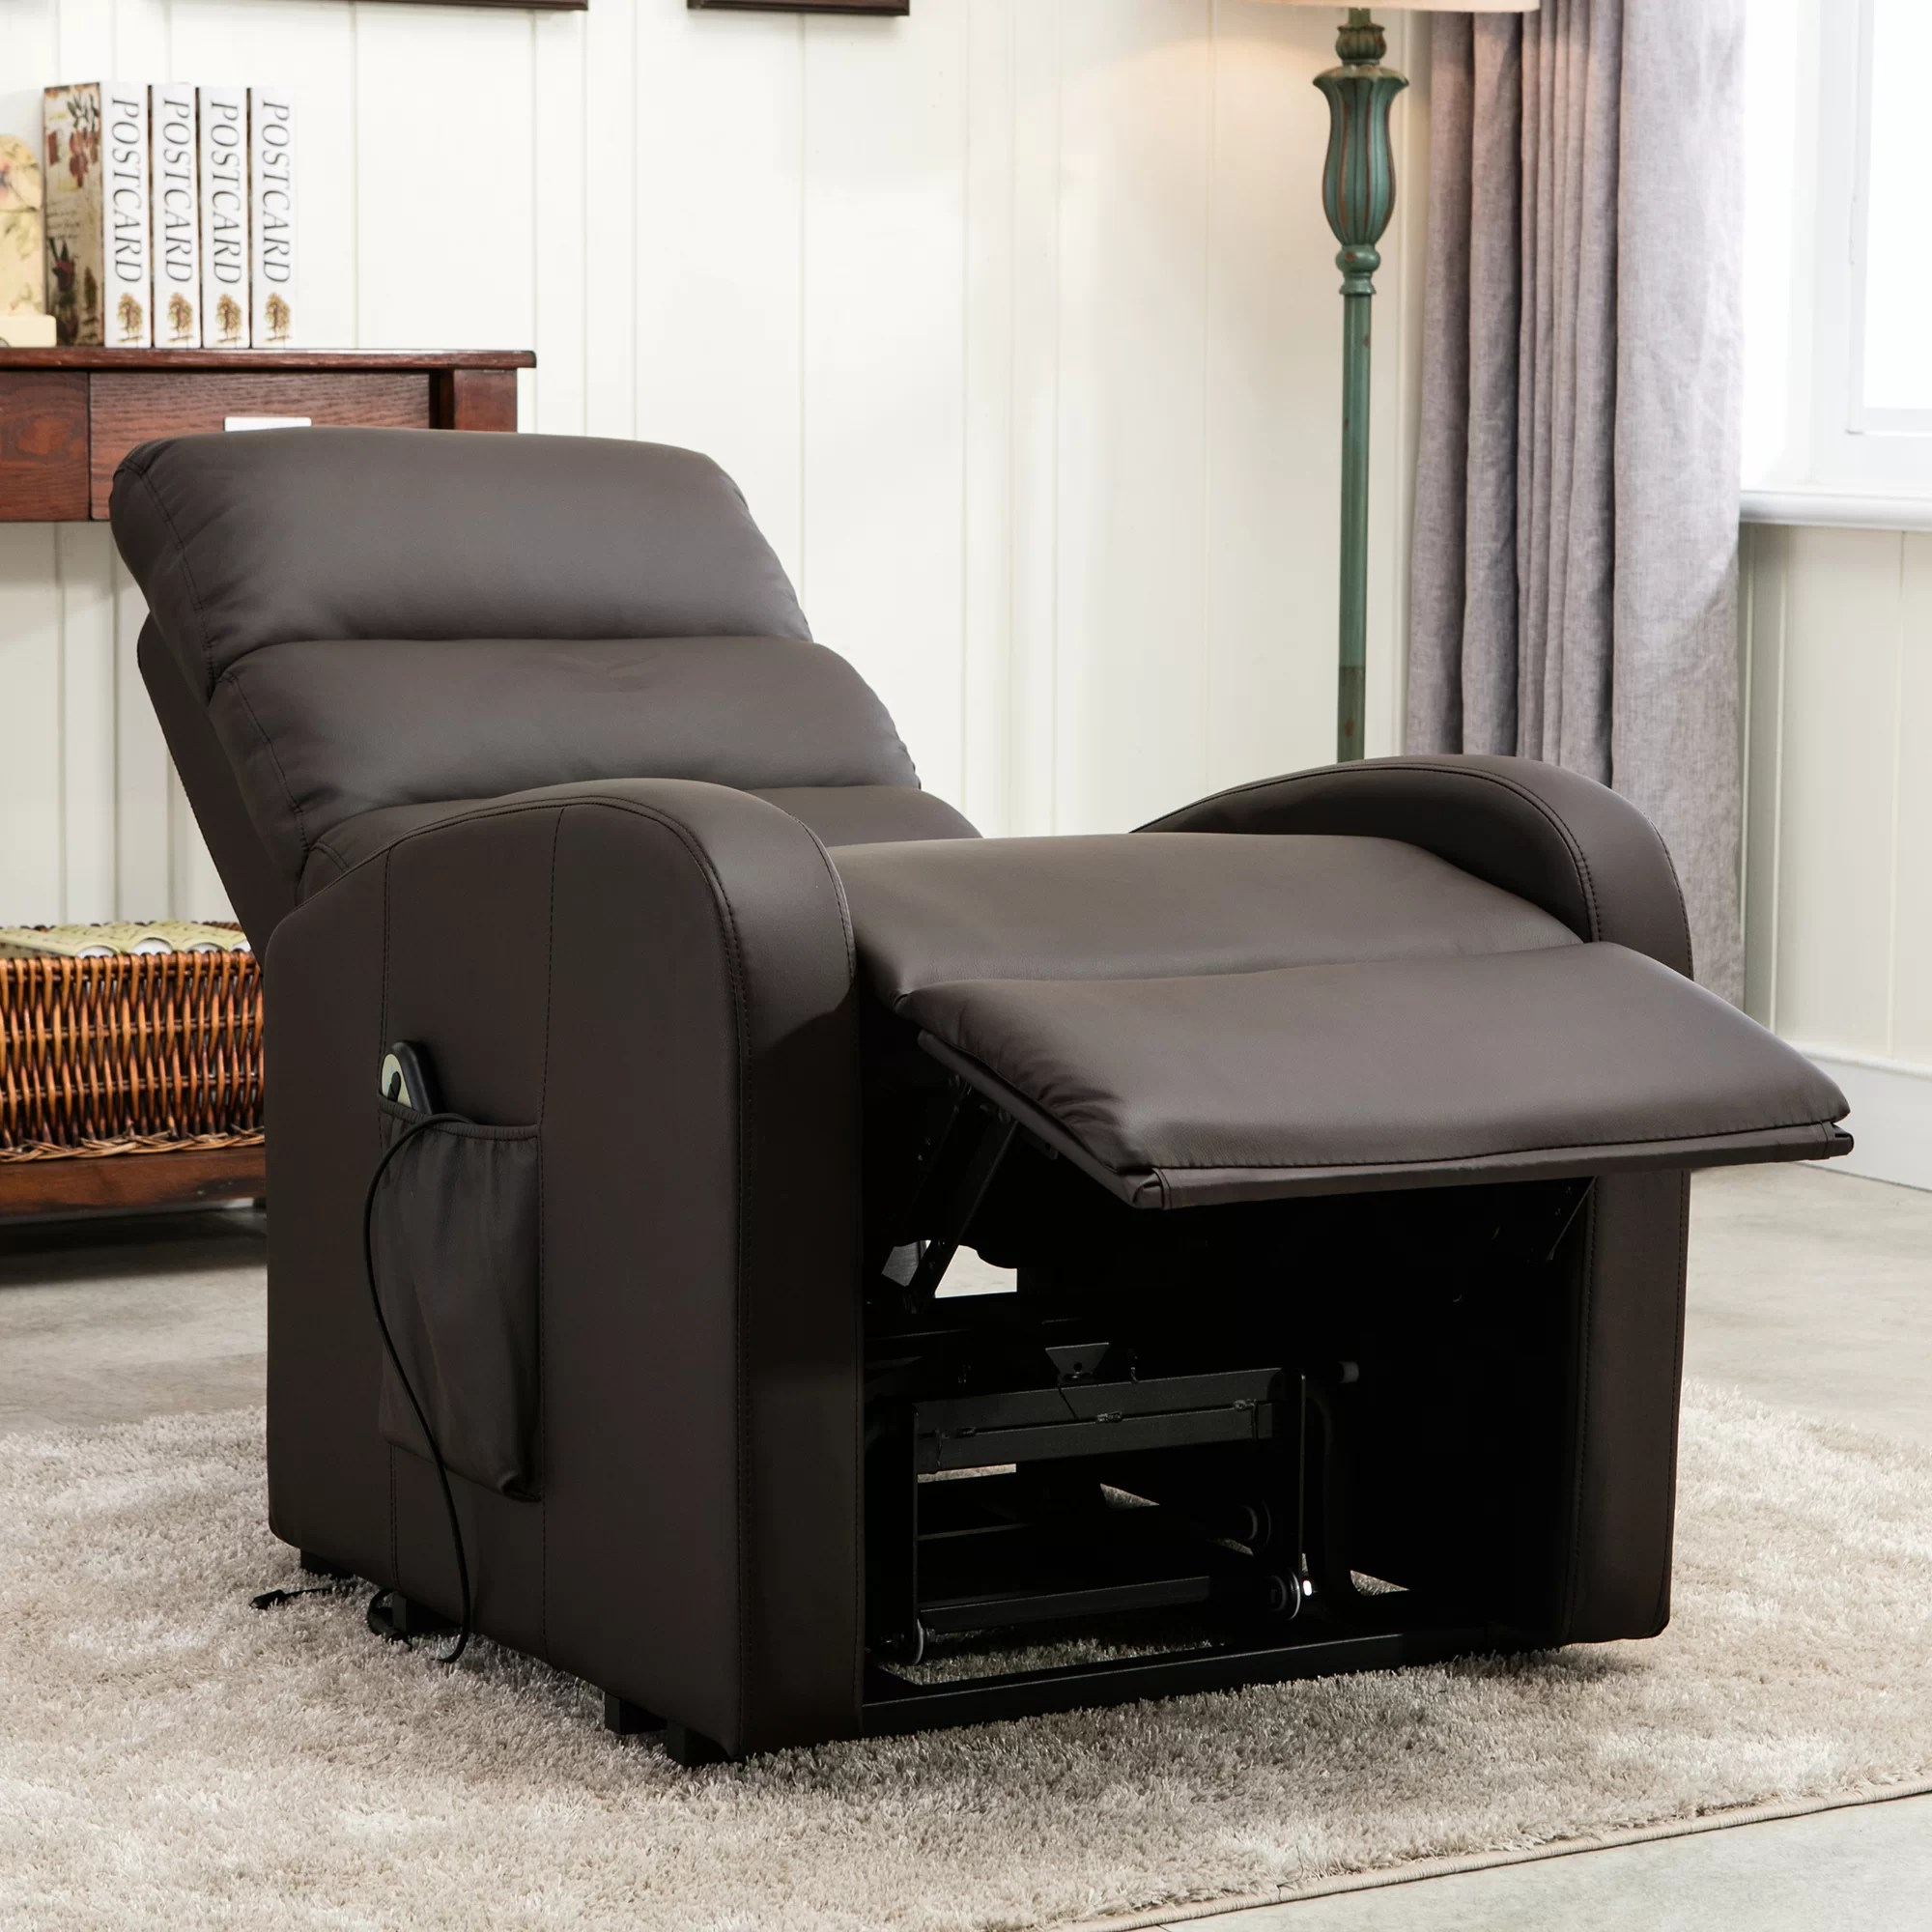 plush leather chair ashley and a half recliner classic bonded power large infinite position